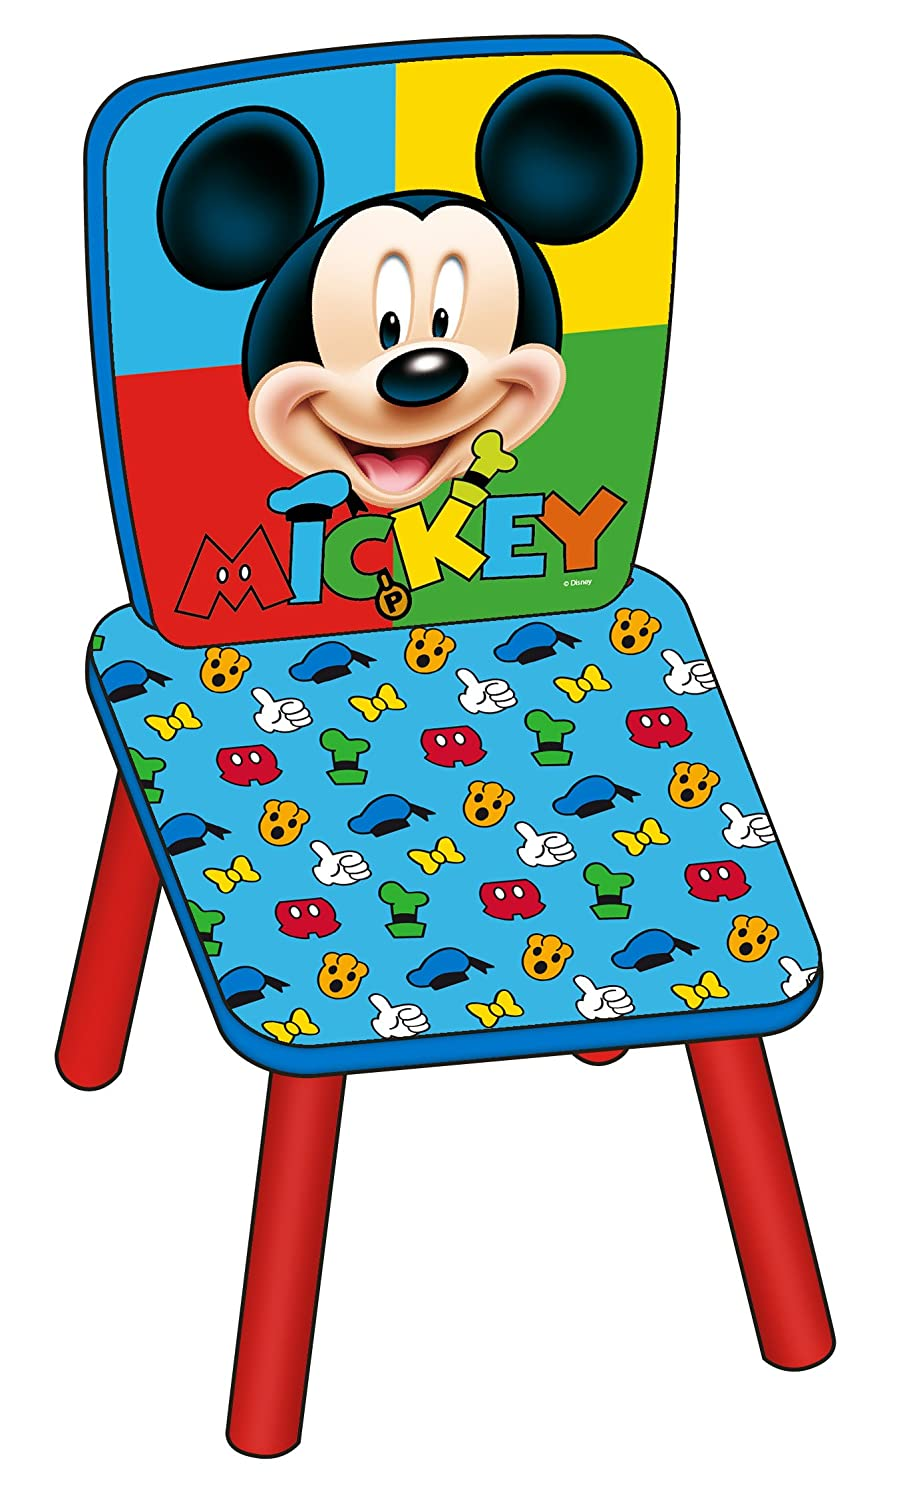 Disney - Mickey Mouse - Shaped Chair TocTocShop WD8443